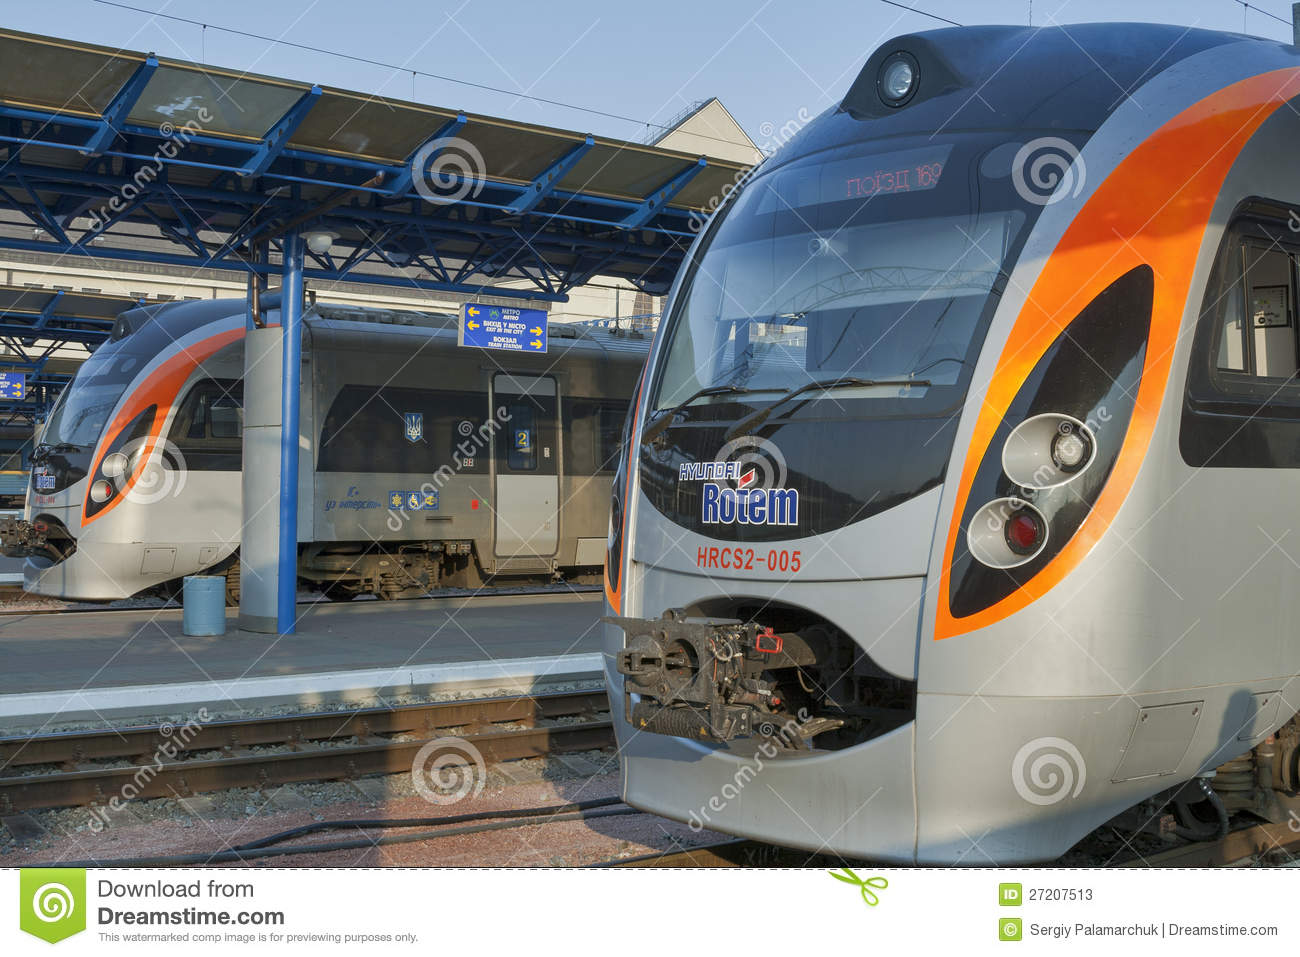 Hyundai Rotem interested in further service of Ukrainian high-speed trains